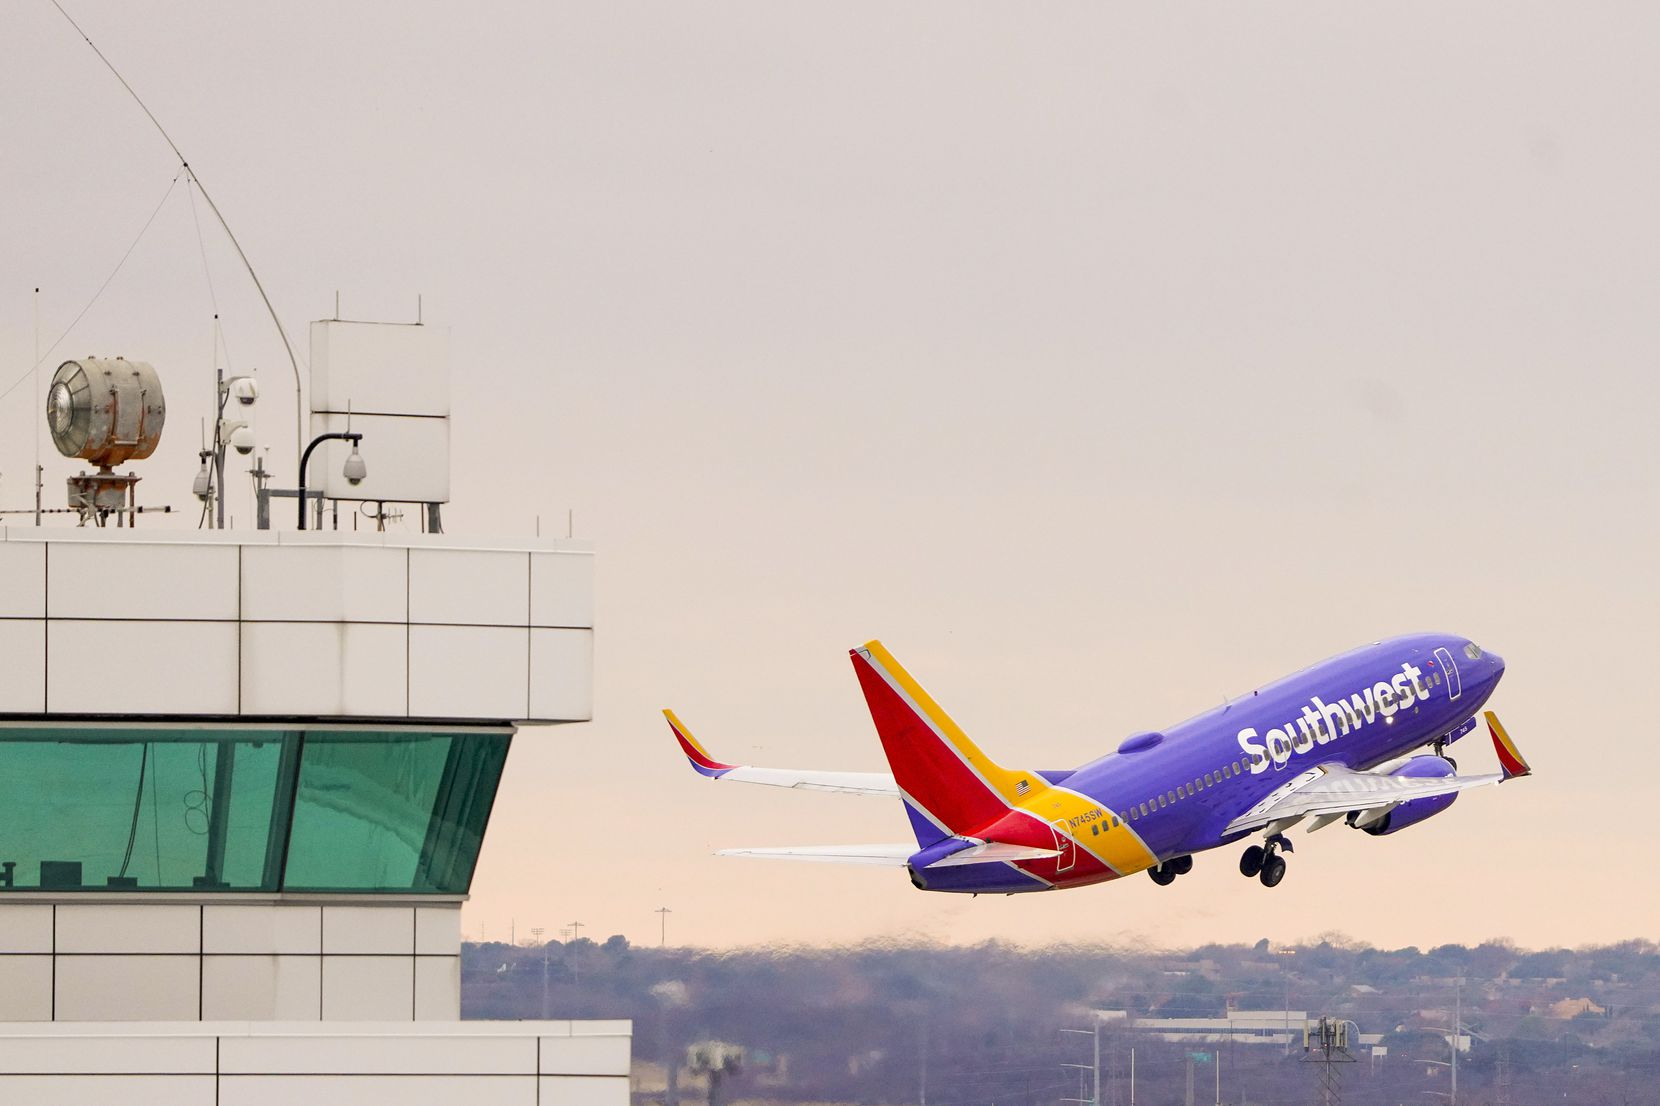 A Southwest Airlines flight takes off at Dallas Love Field earlier this month.